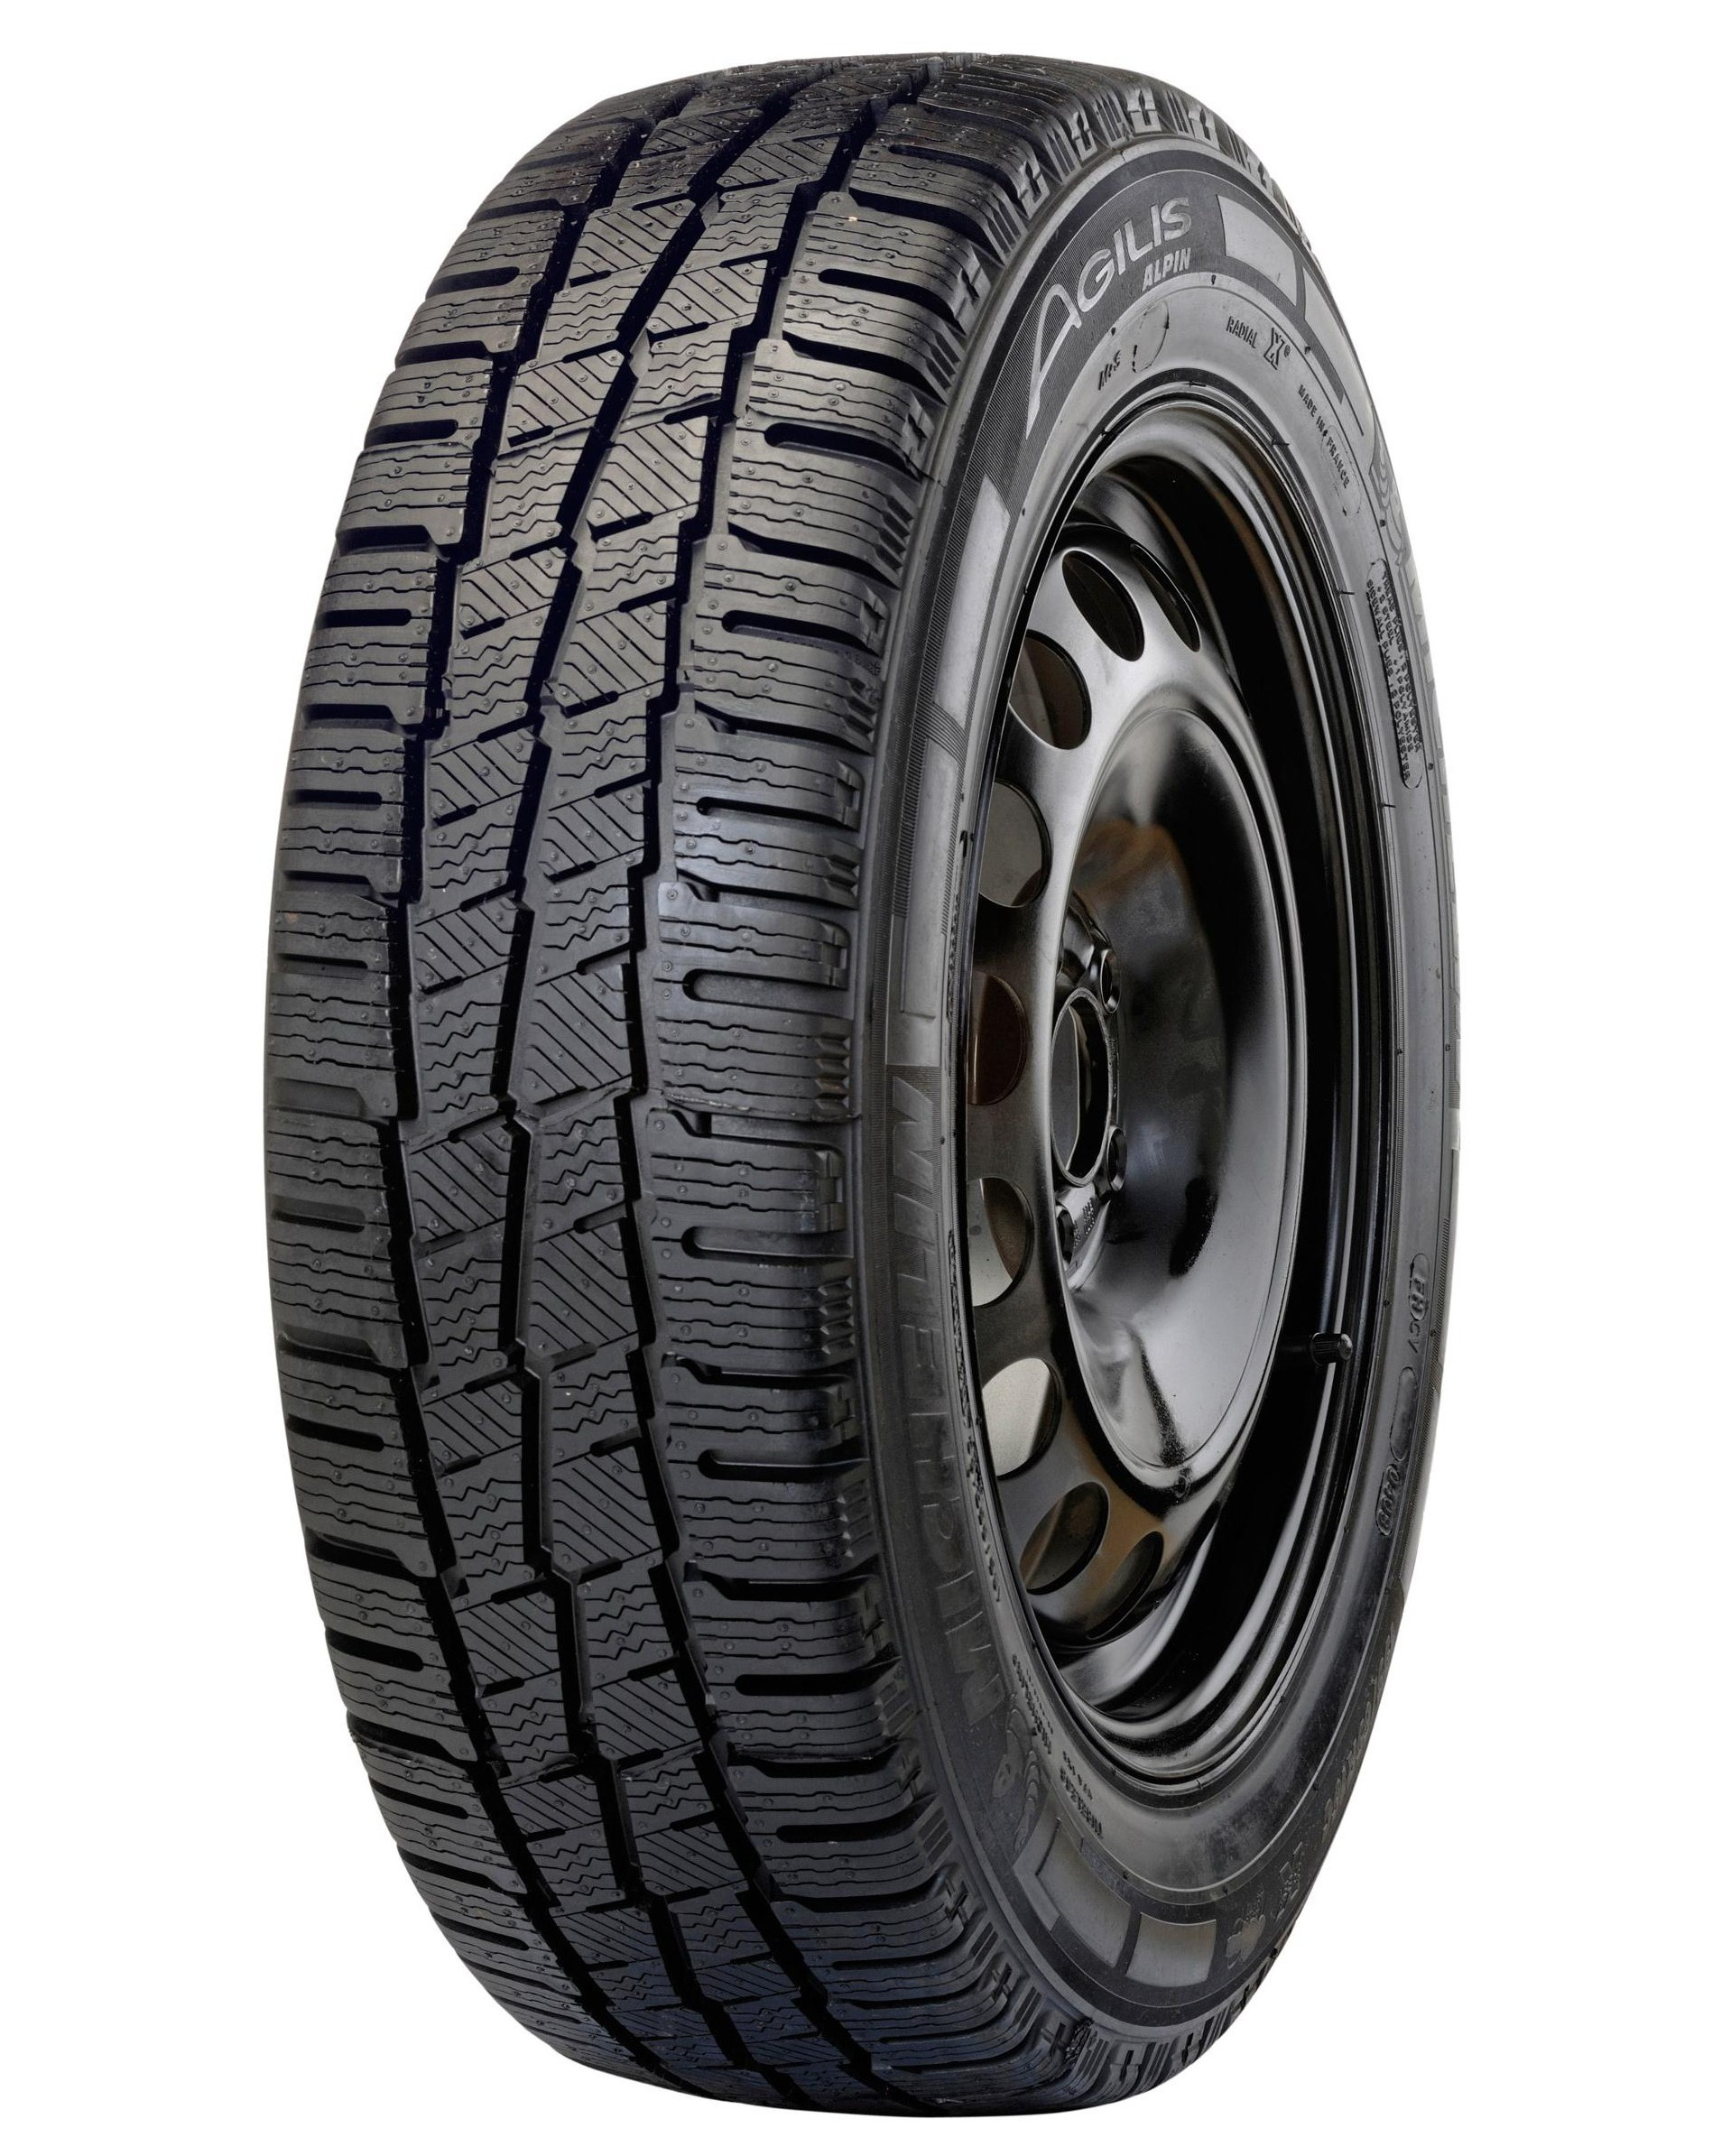 195/70 R15C [104/102] R AGILIS ALPIN - MICHELIN